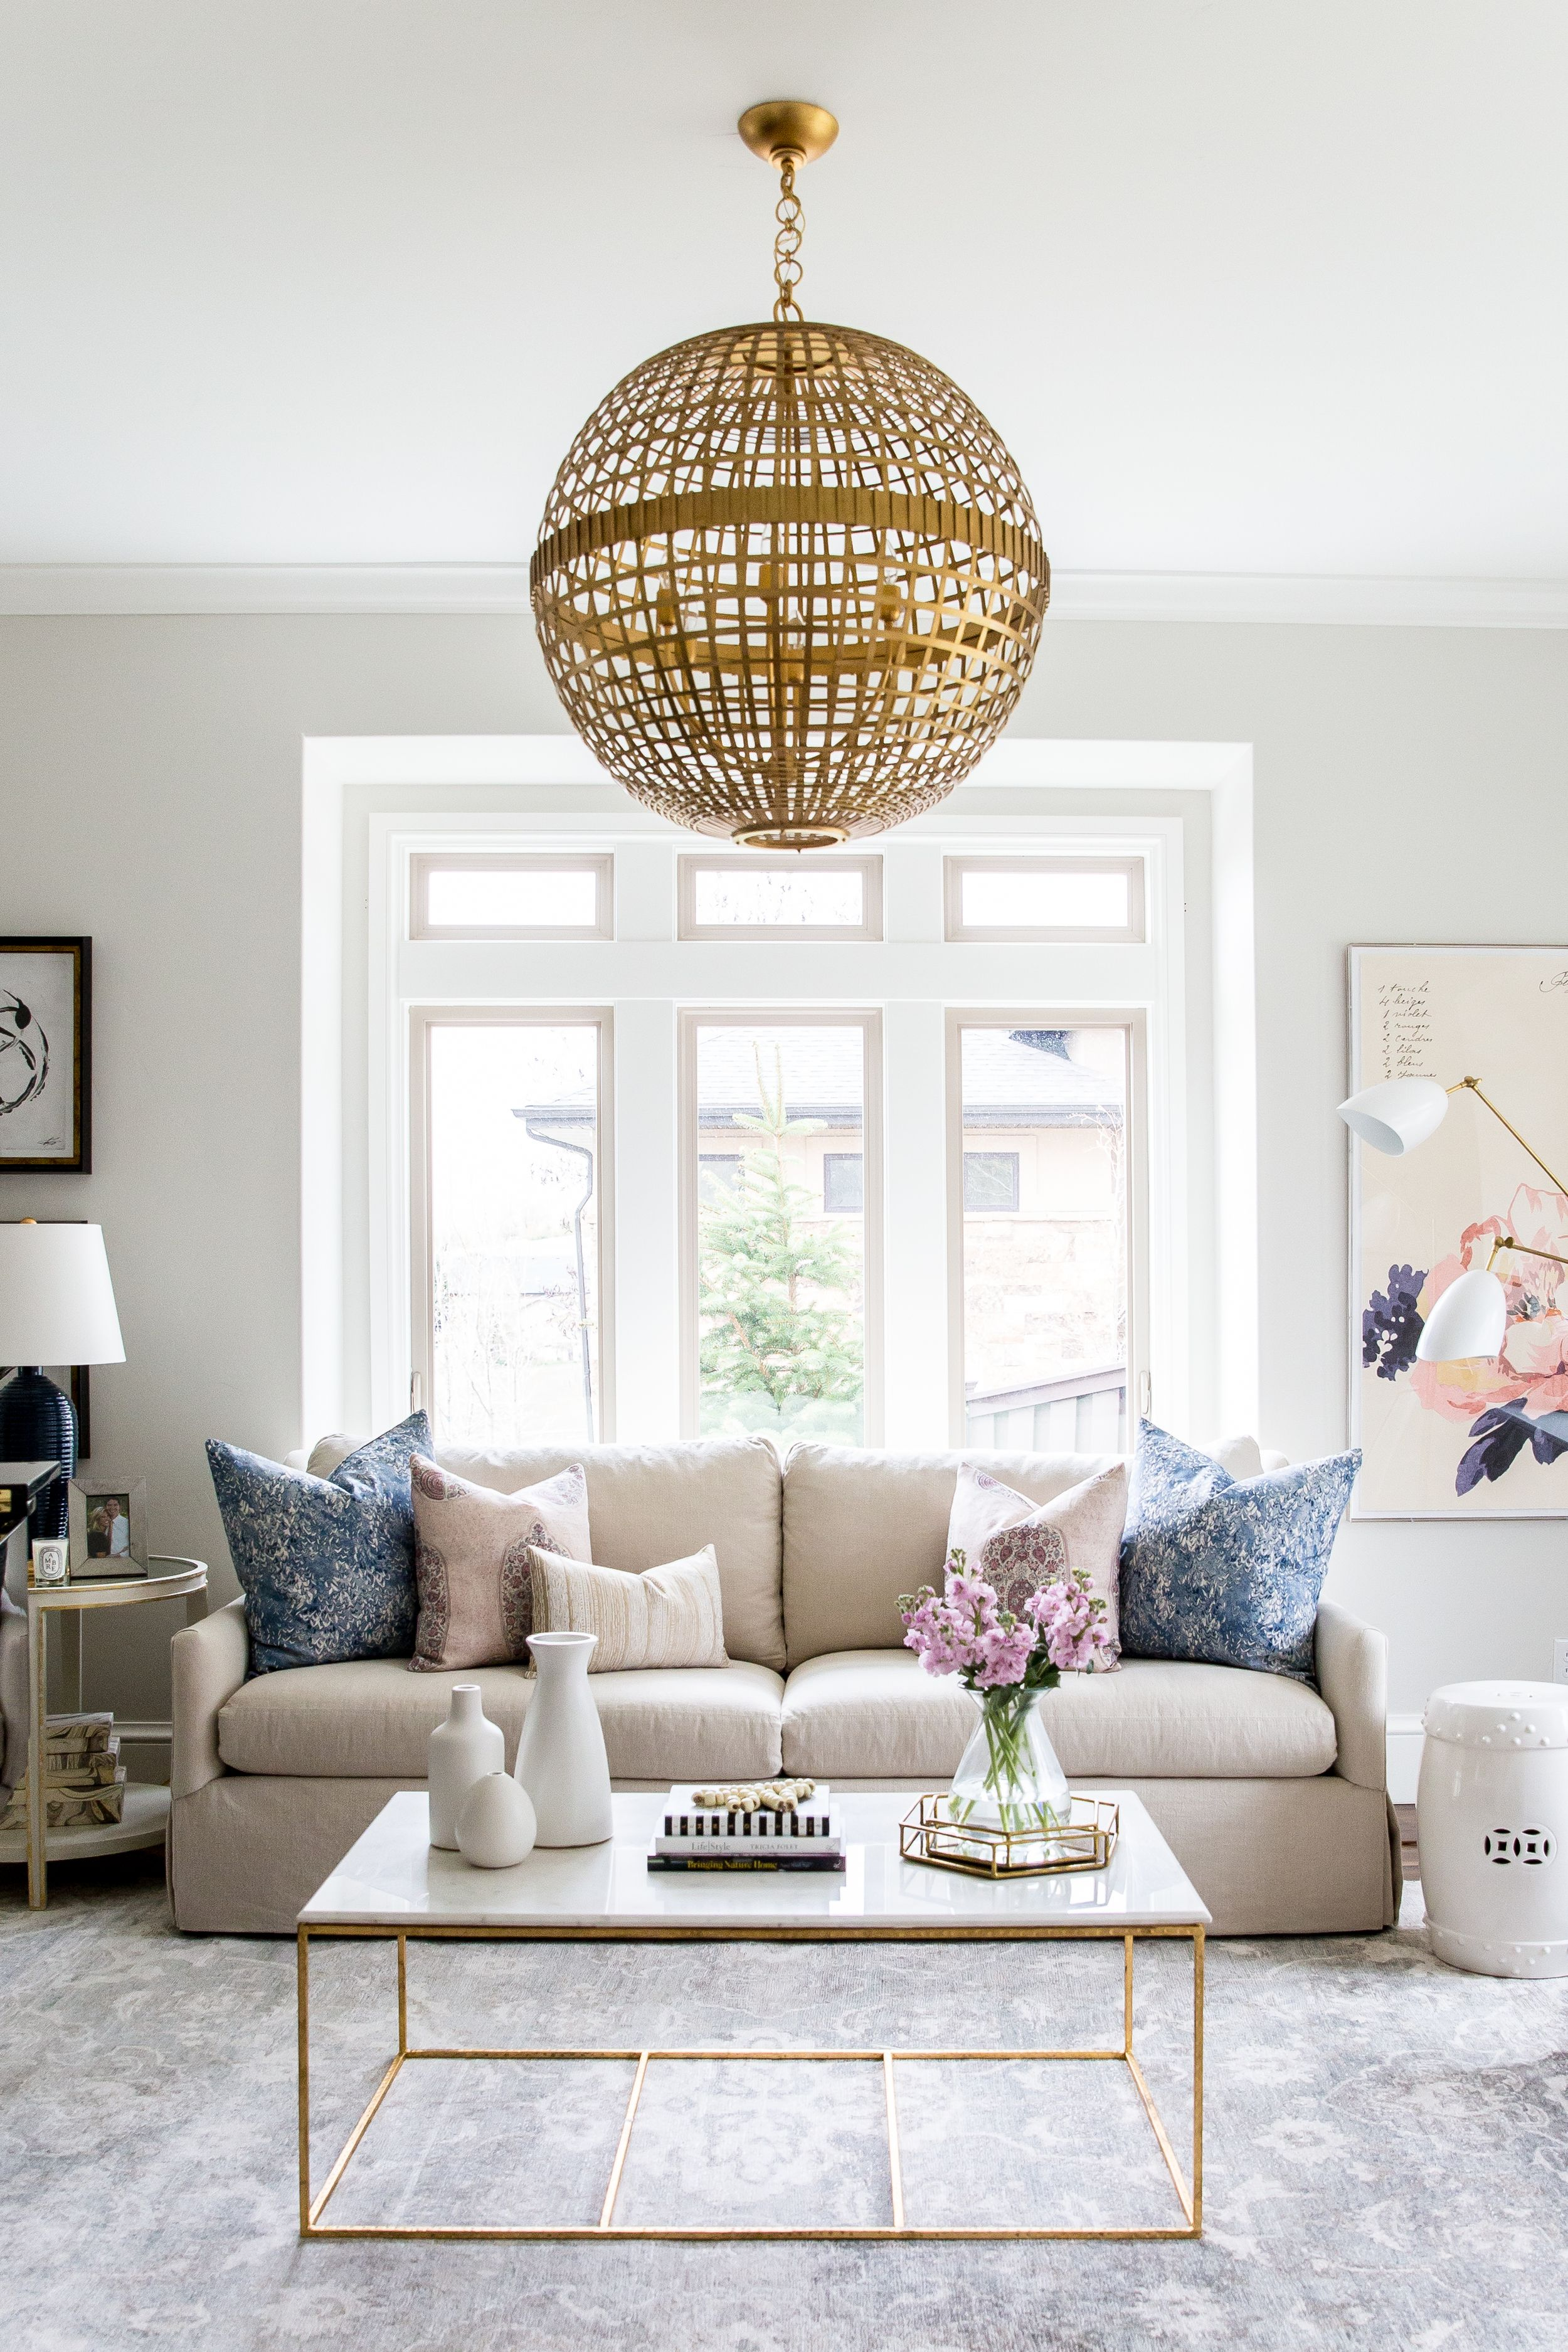 Foothill Drive Project: Formal Living Room | Luxus-möbel, Wohnzimmer ...